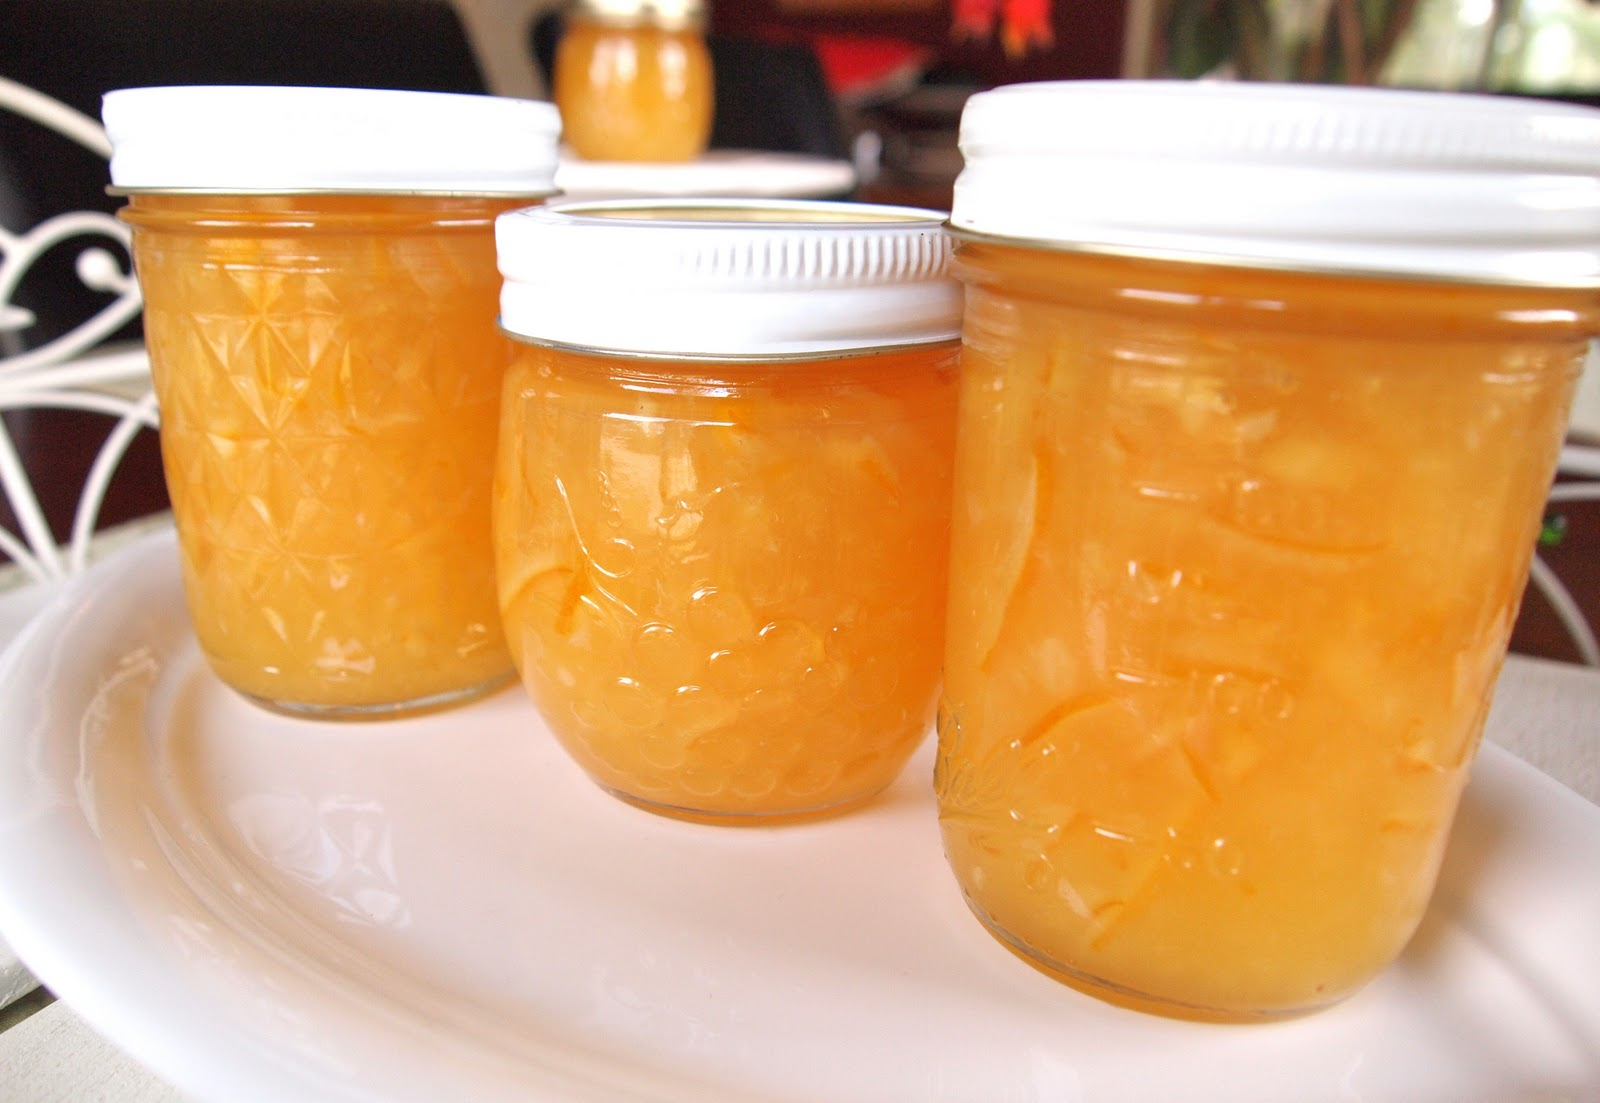 The Alchemist: Meyer Lemon Marmalade